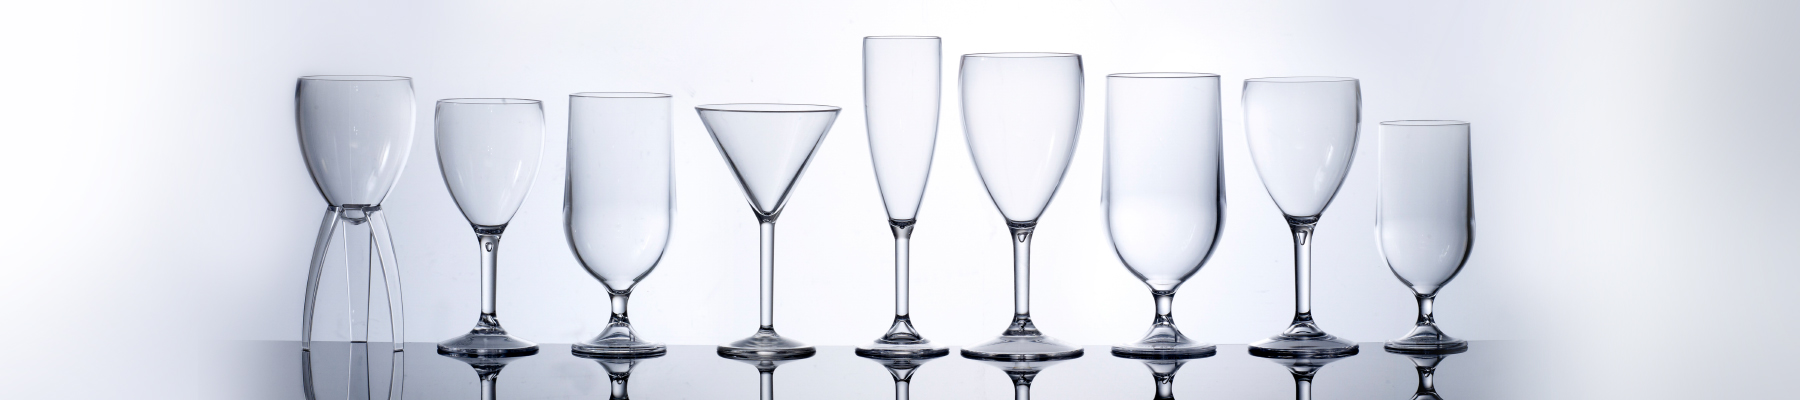 Reusable Plastic Wine Glasses